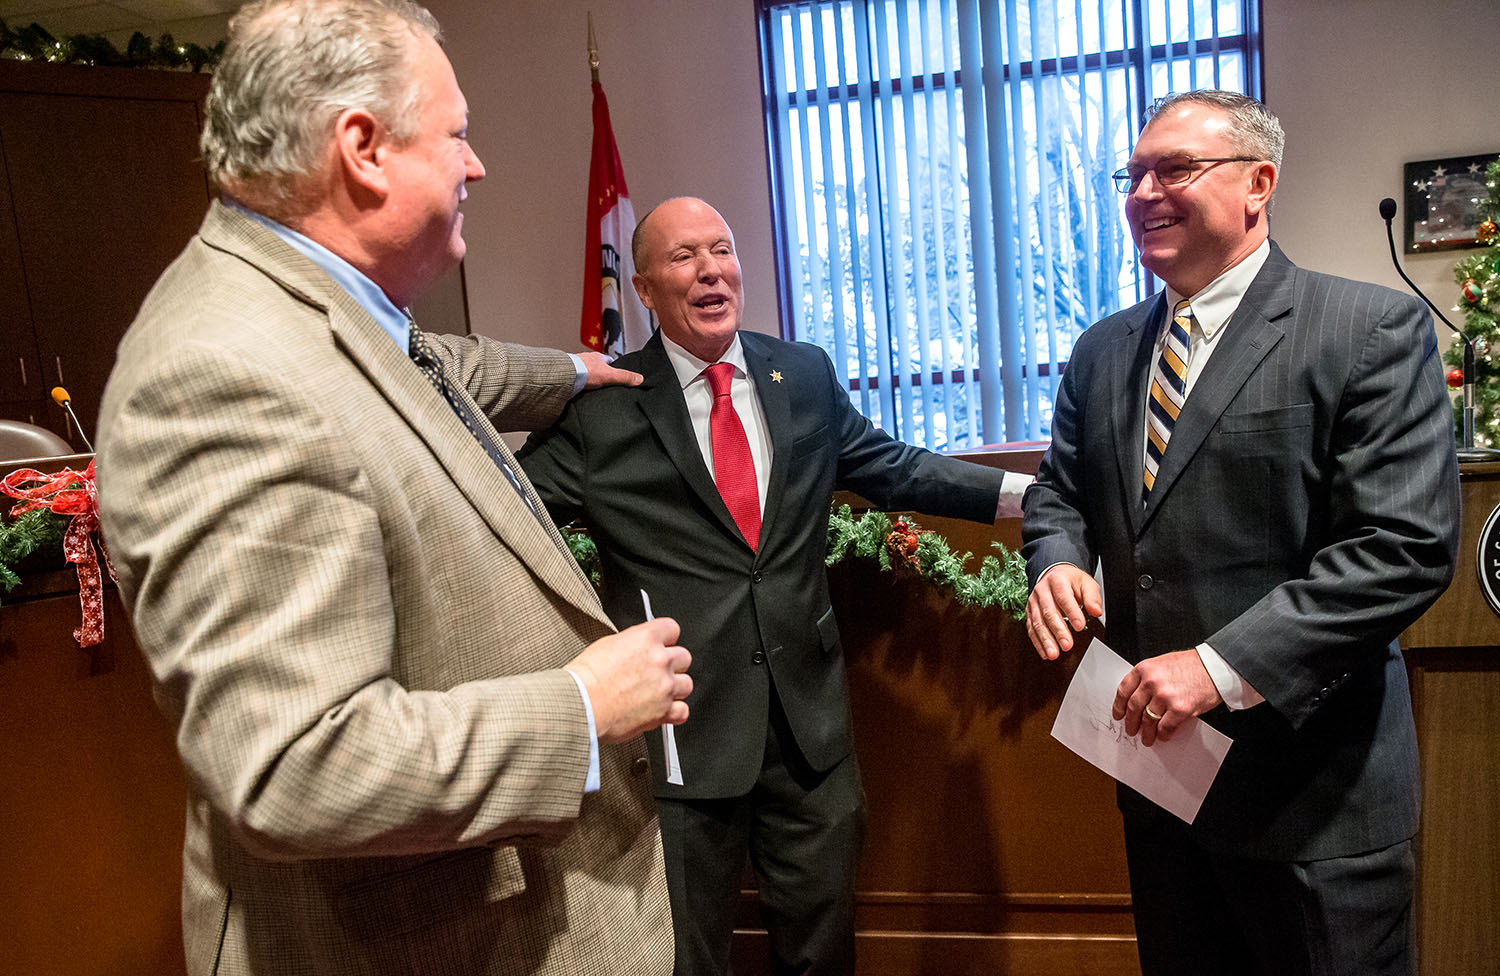 Sangamon County Sheriff Jack Campbell, center, is joined by Sangamon County Treasurer Joe Aiello, left, and Sangamon County Clerk Don Gray, right, after the three took the oath of office during a swearing-in ceremony in the Sangamon County Board Chambers at the Sangamon County Building, Monday, Dec. 3, 2018, in Springfield, Ill. [Justin L. Fowler/The State Journal-Register]